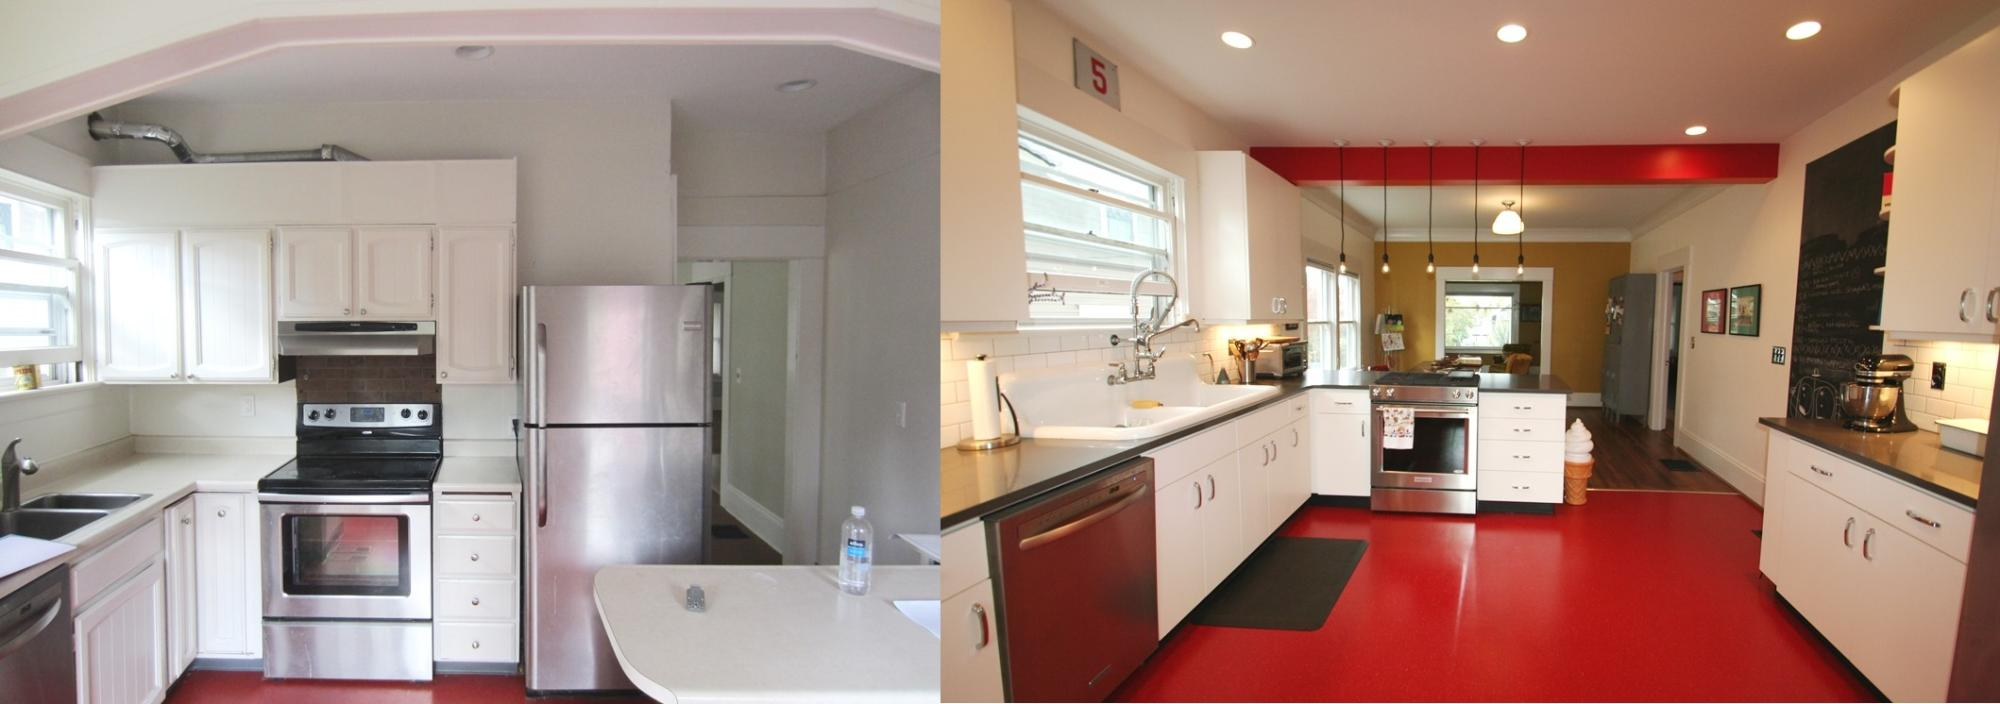 before___after_kitchen_5.jpg